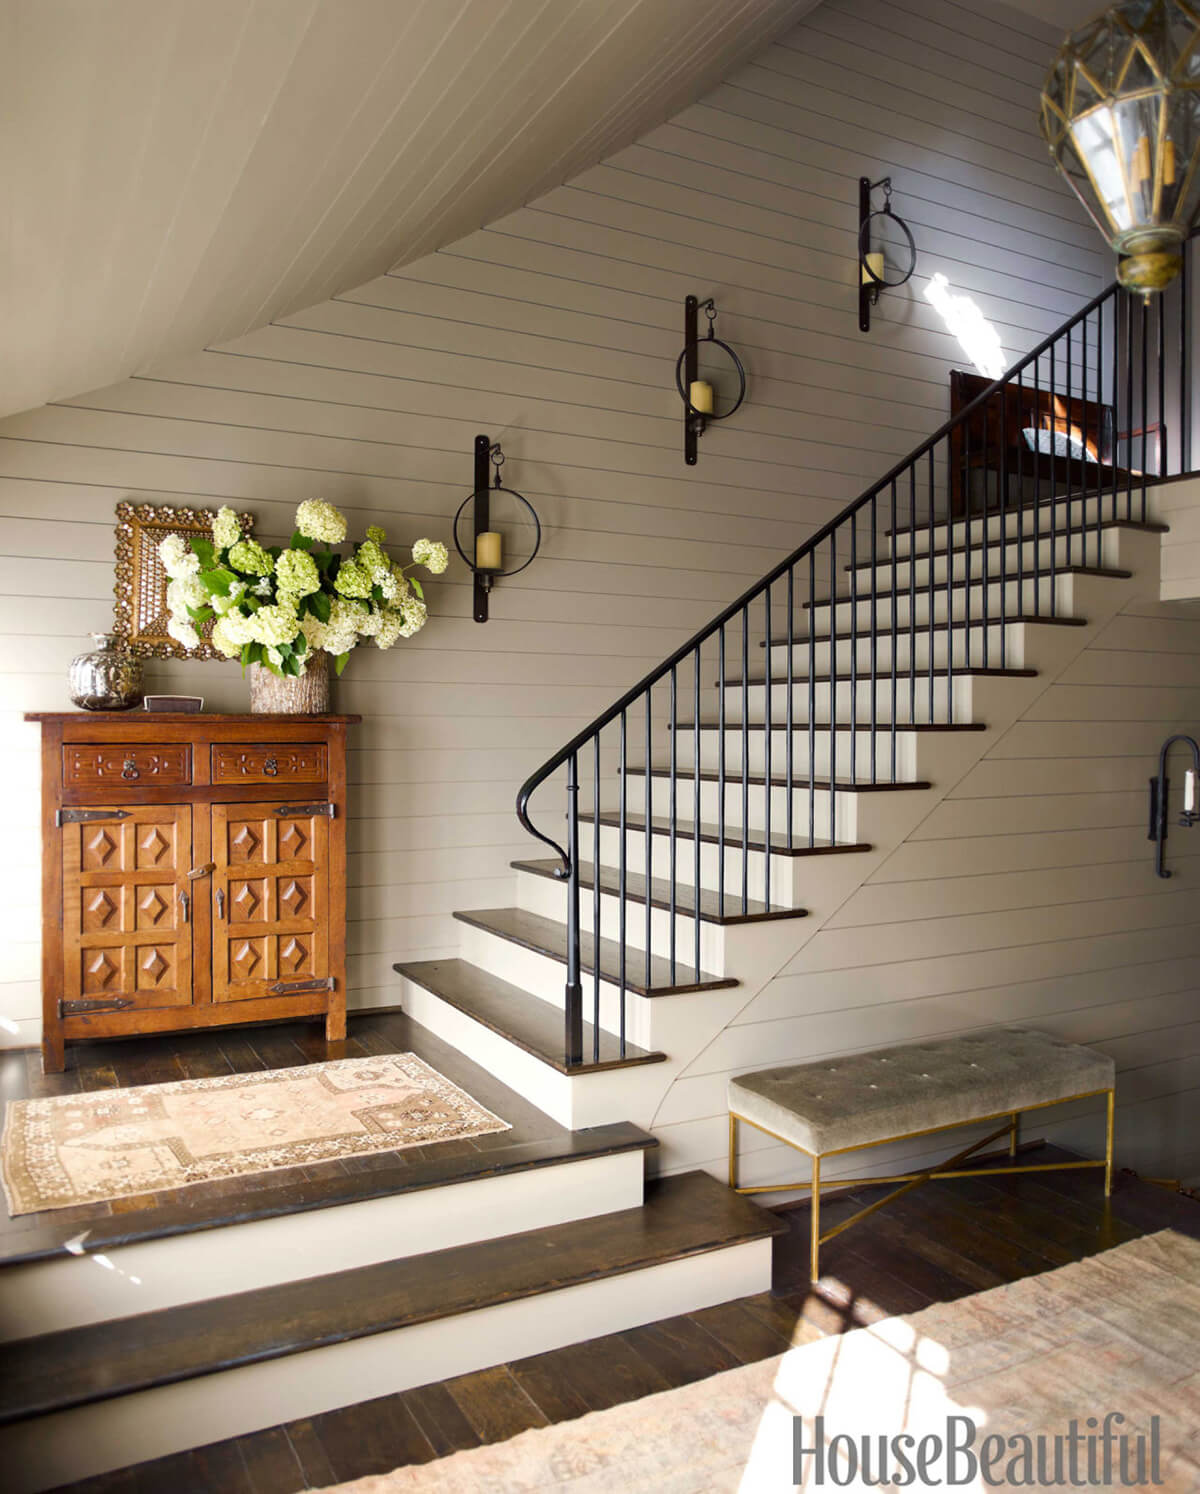 28 Best Stairway Decorating Ideas and Designs for 2020